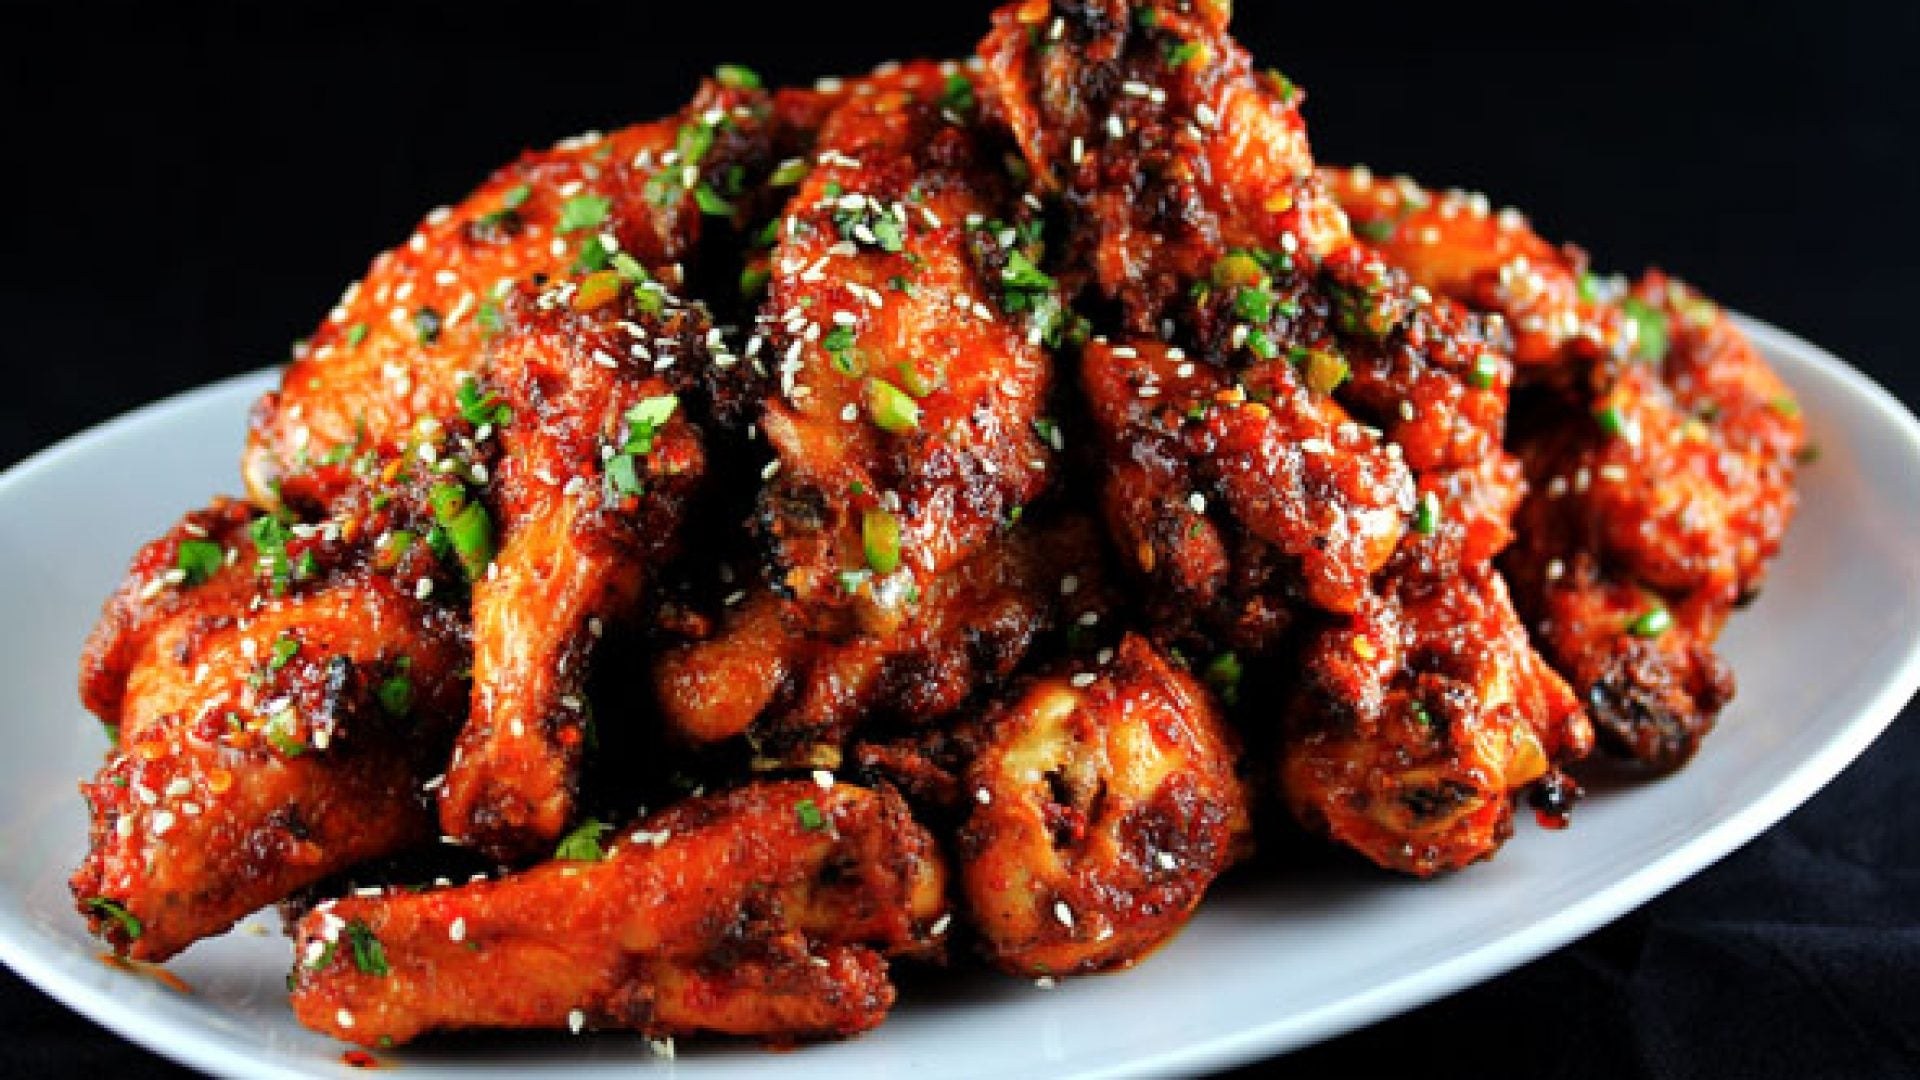 Celebrate National Chicken Wing Day With These Wing Recipes From Black Chefs